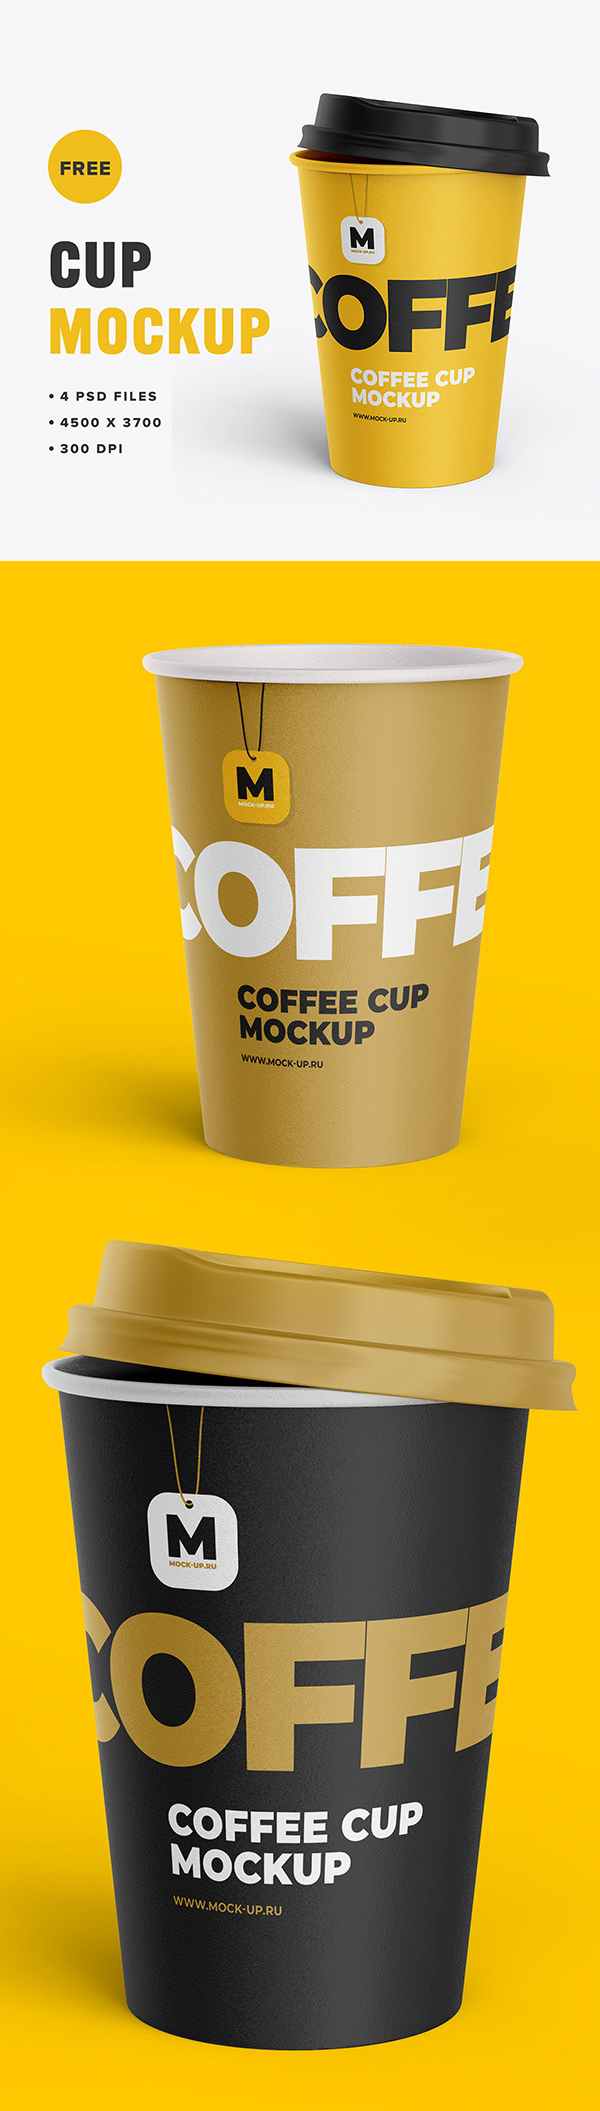 Free Tea and Coffee Cup Mockup